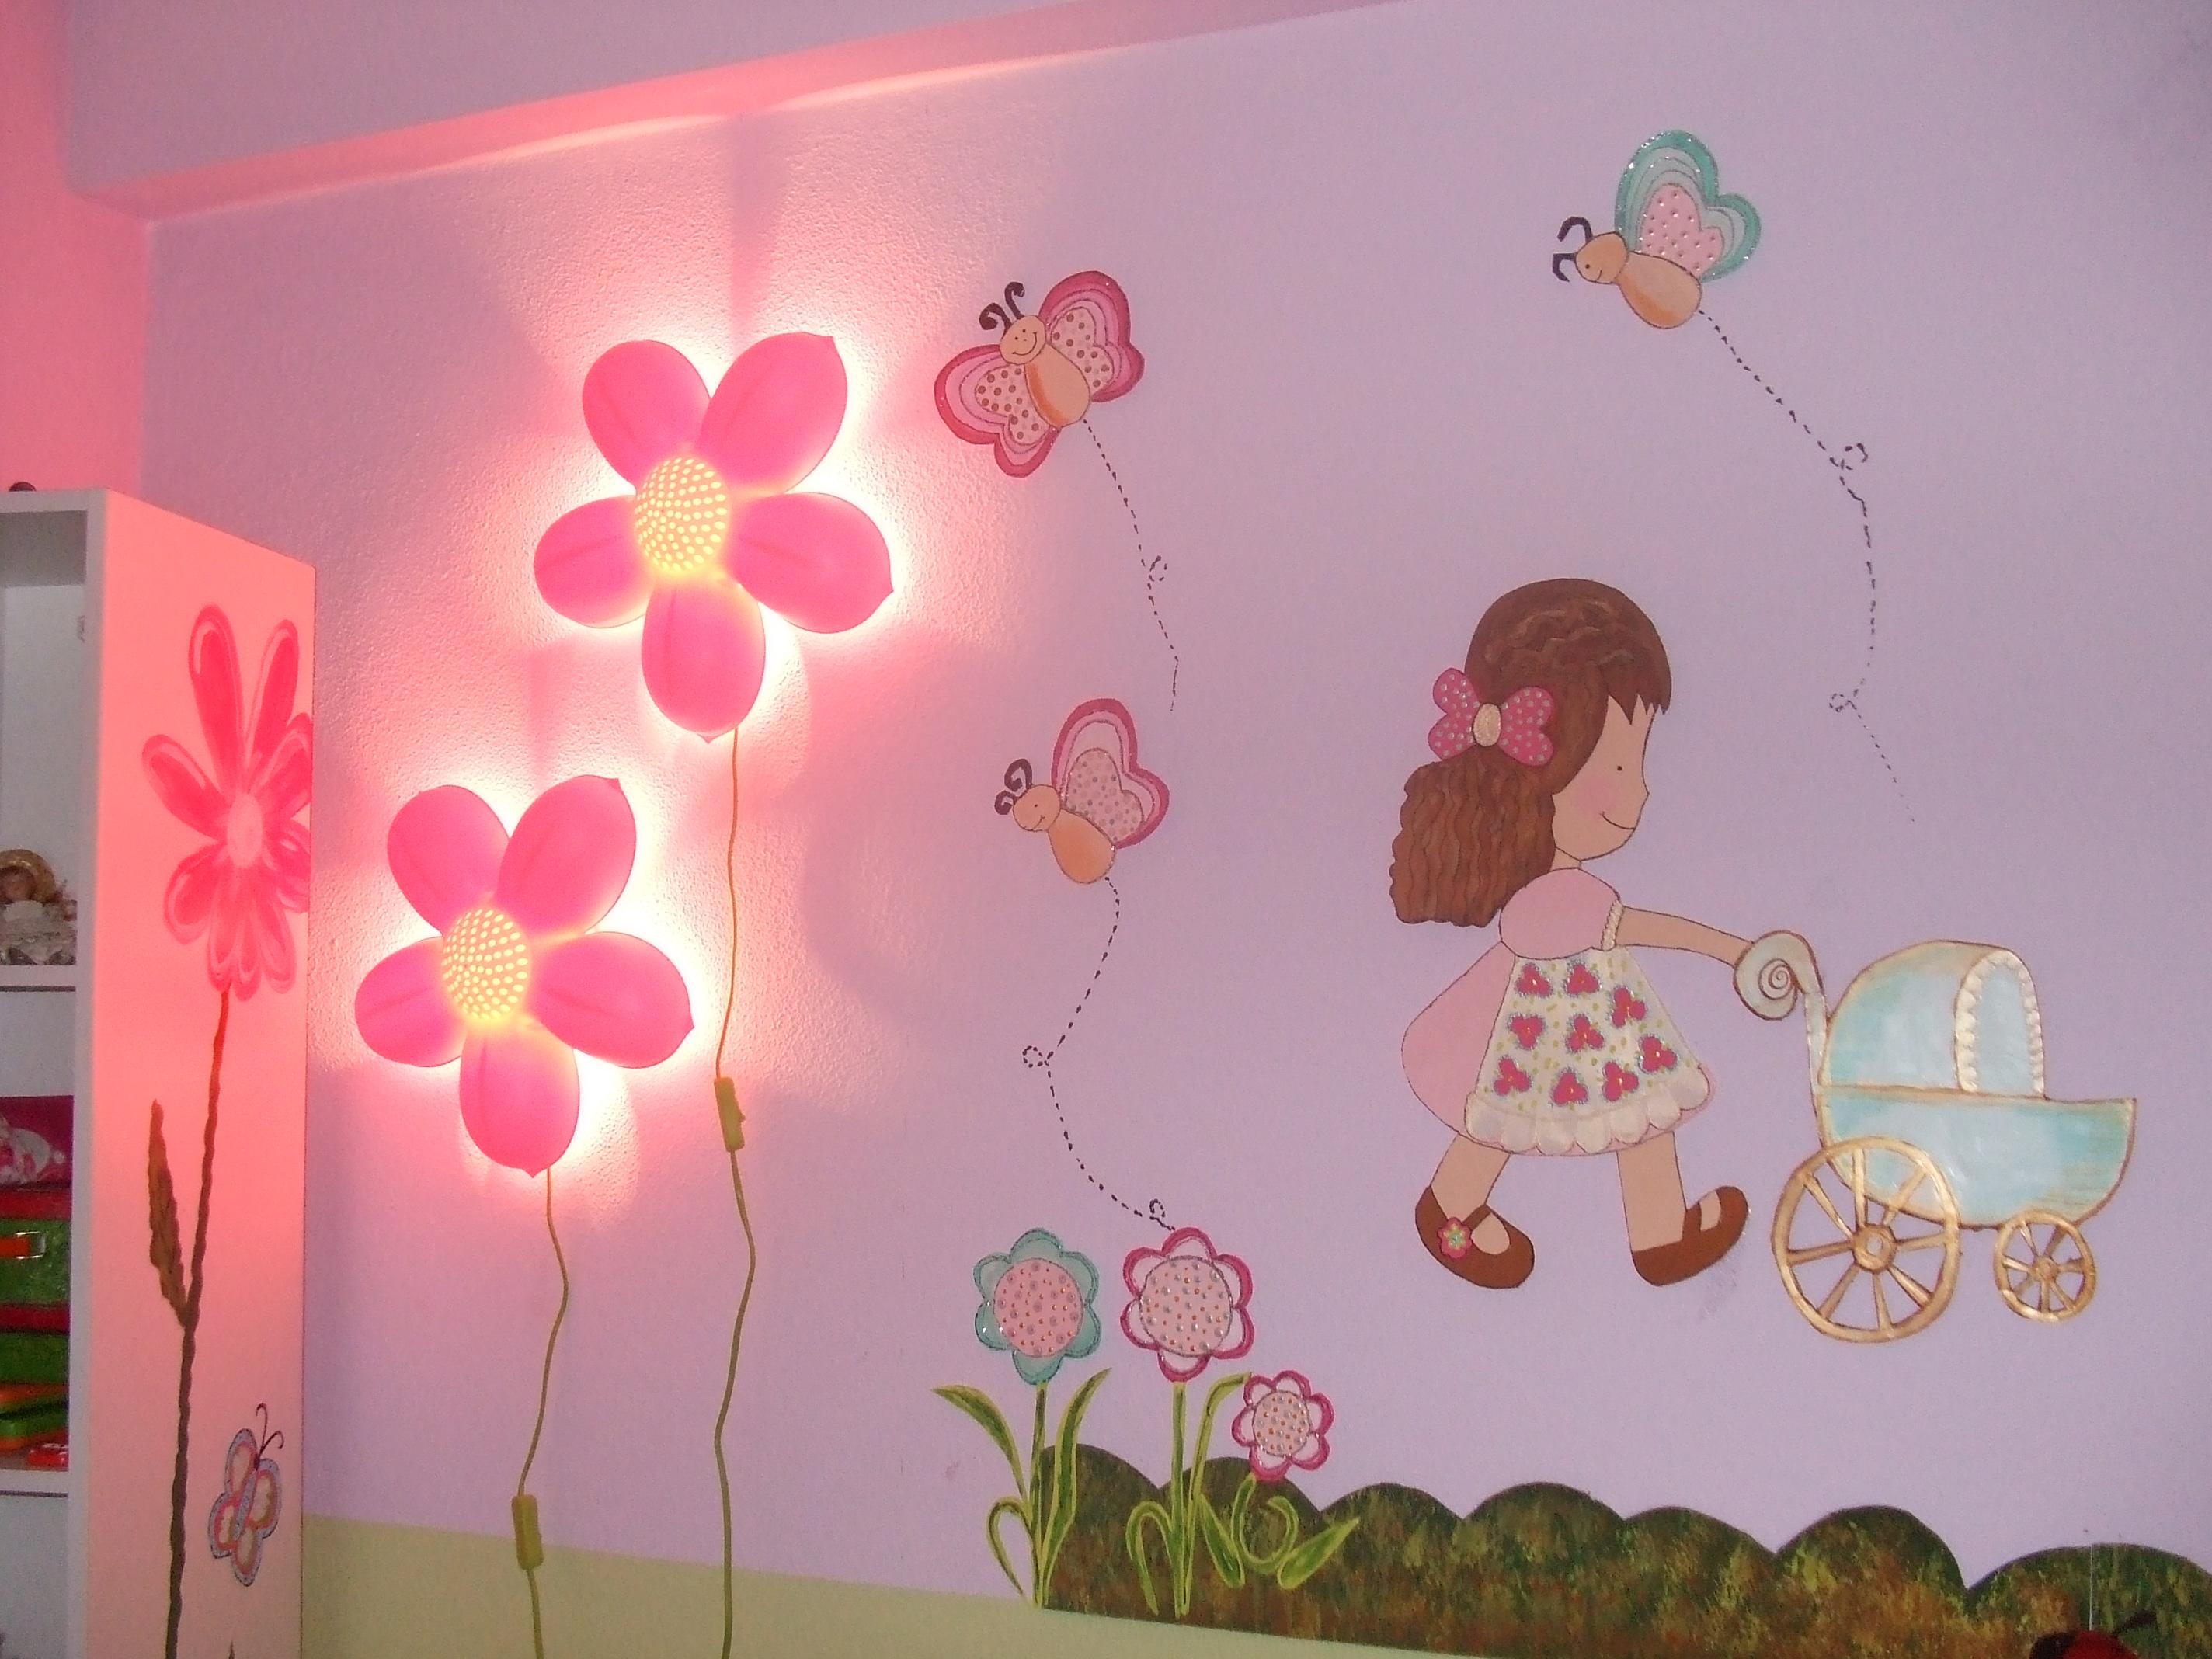 Kids Room Wall Art Gharexpert: kids room wall painting design